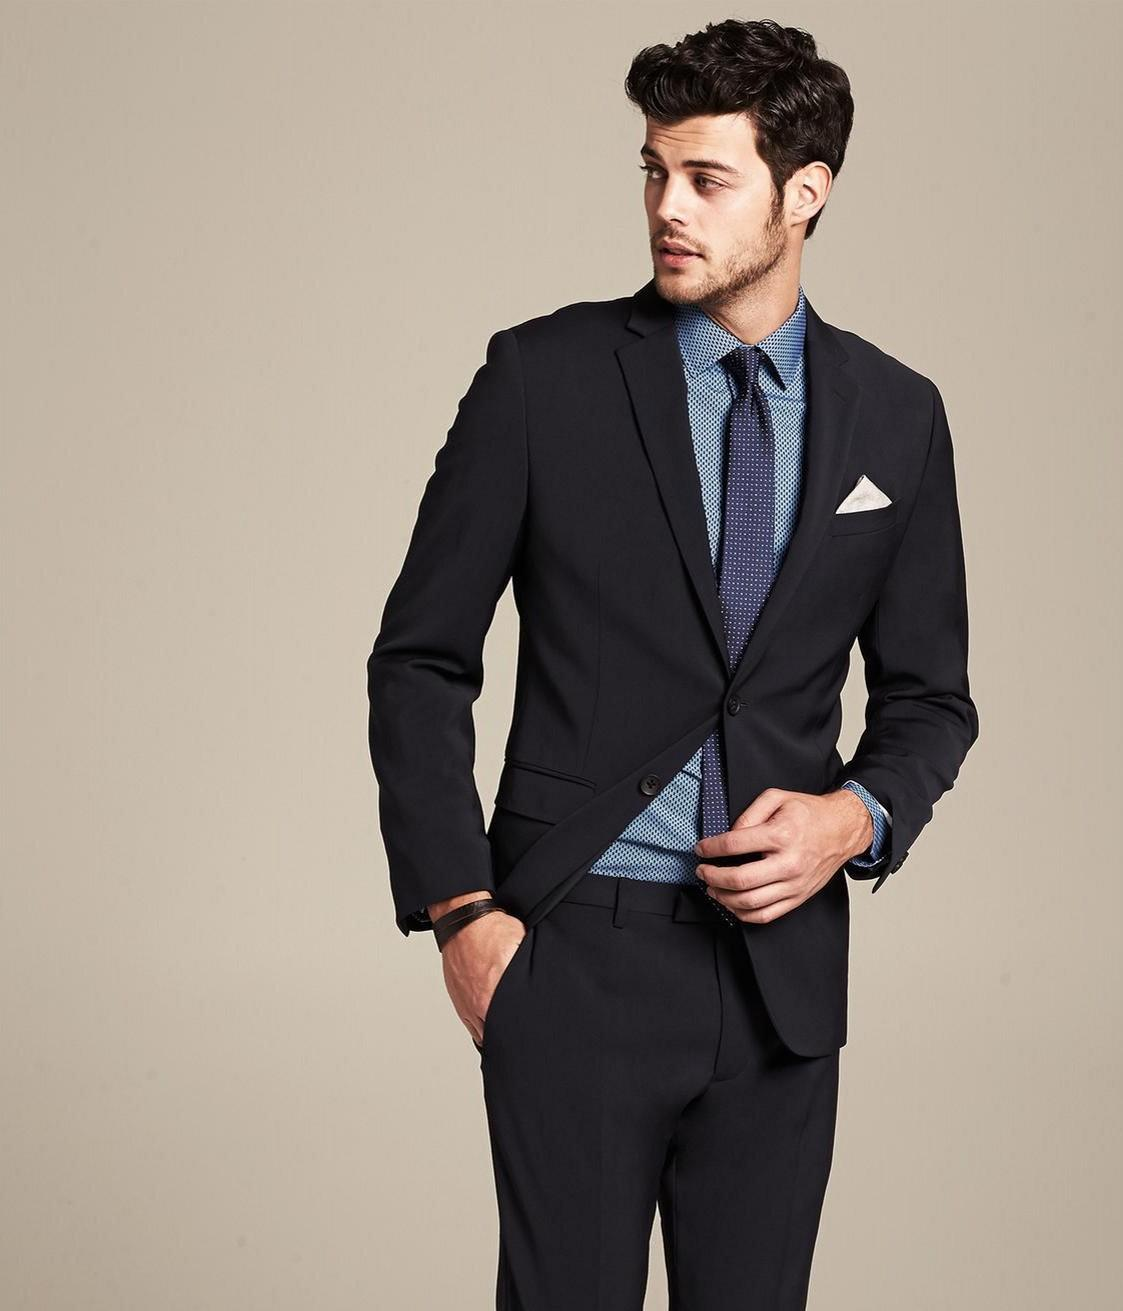 2015-New-Arrival-Suit-Black-Man-Pants-Formal-Wear-For-Men-Traje-De-Novio-Jacket-Pants.jpg